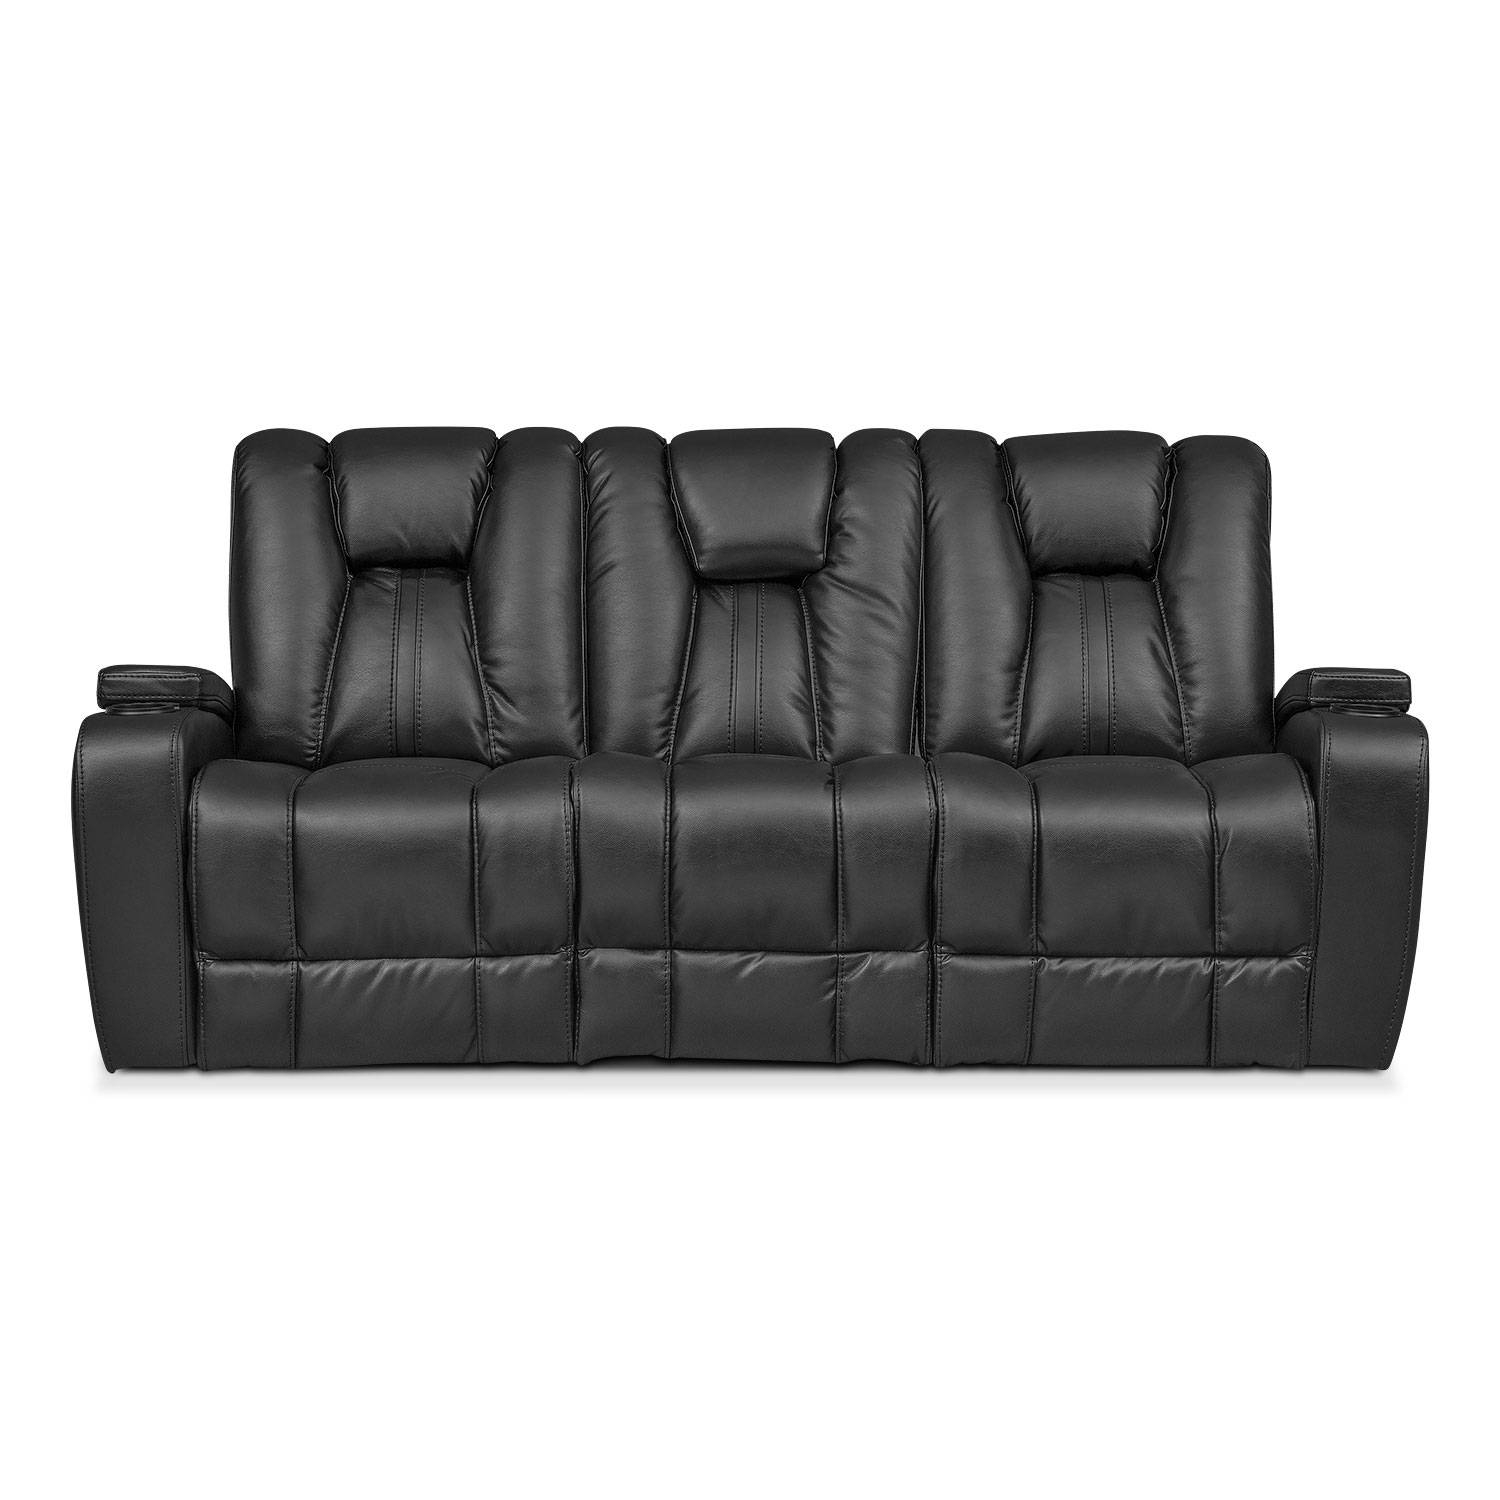 Pulsar Dual Power Reclining Sofa - Black | Value City Furniture inside 4 Seat Leather Sofas (Image 24 of 30)